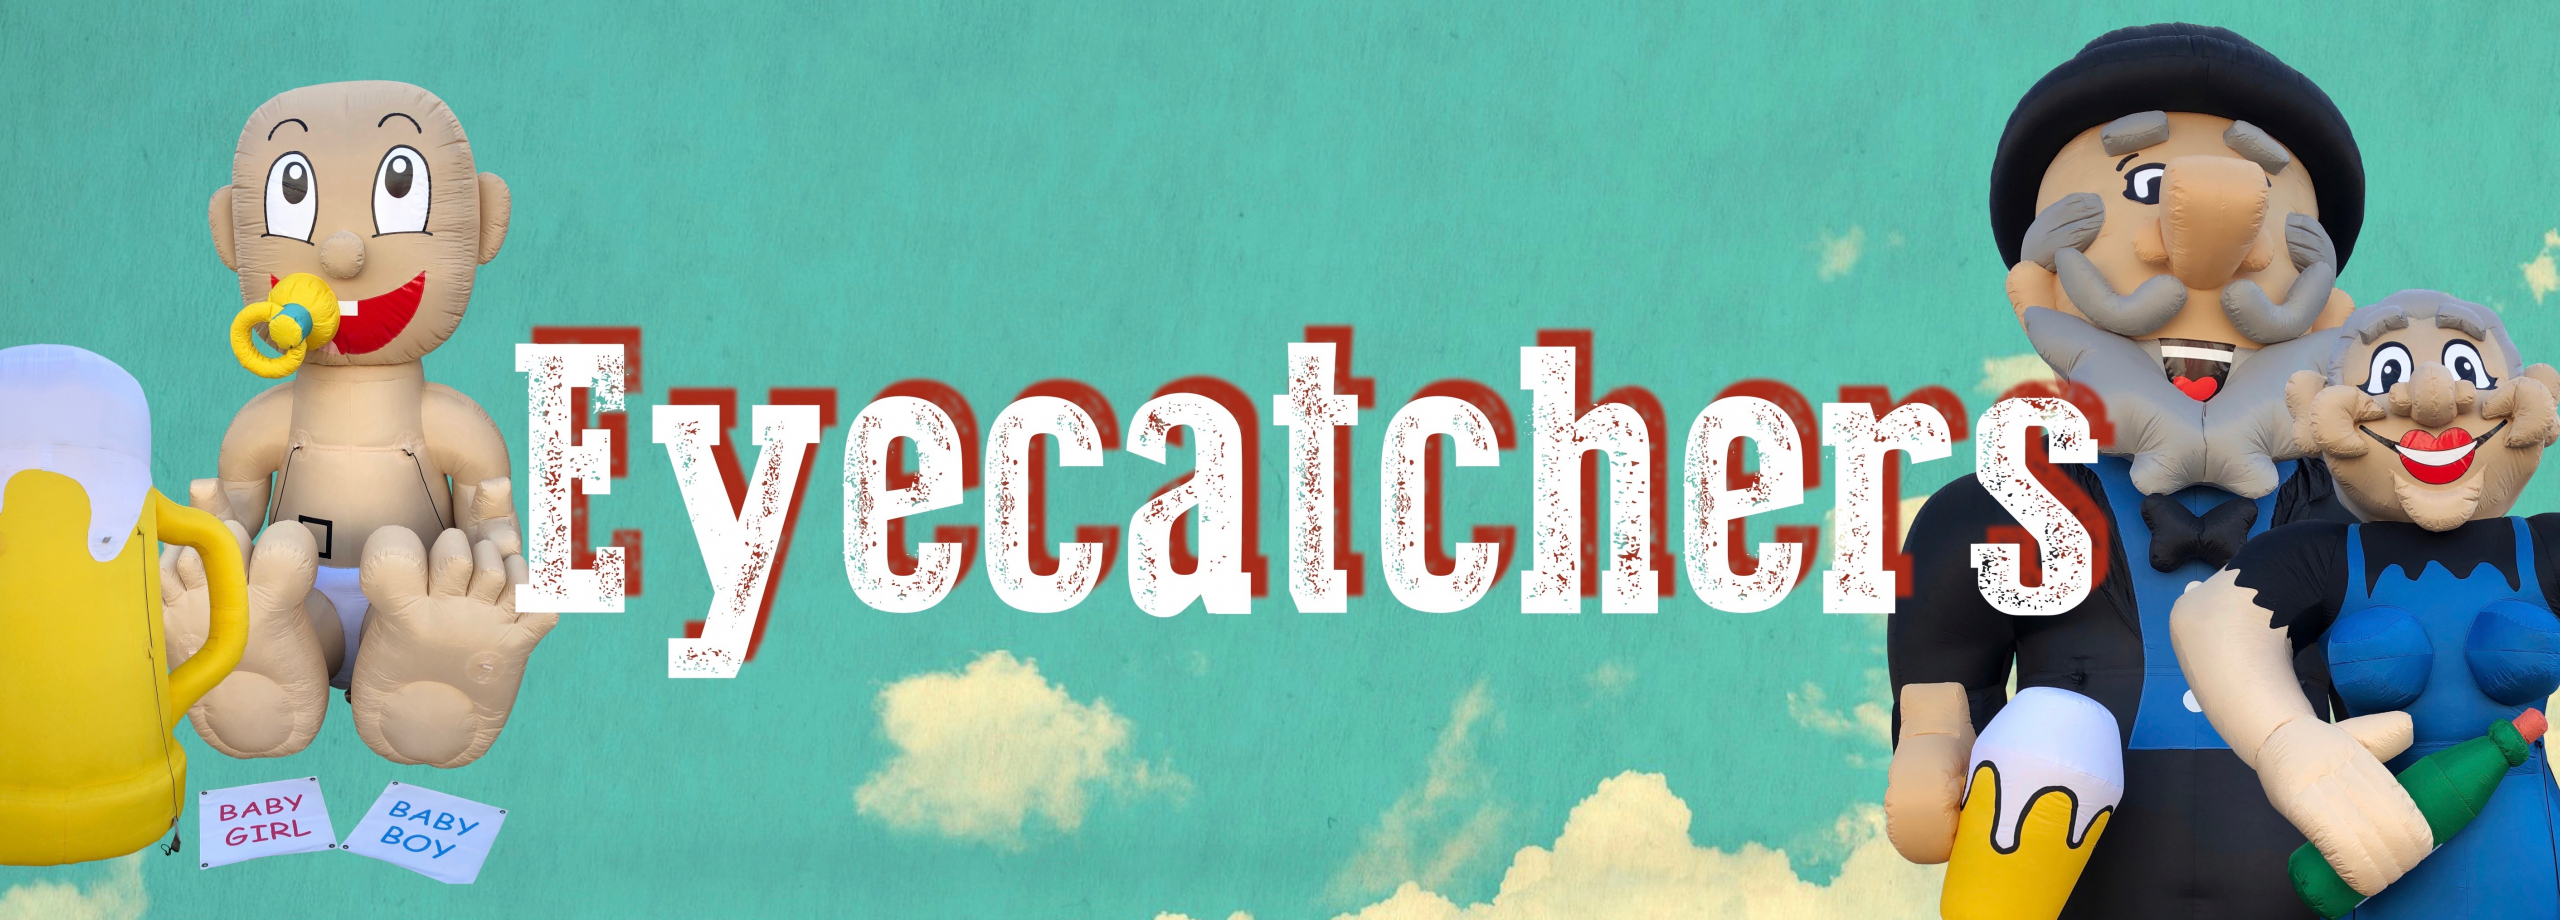 header eyecatchers